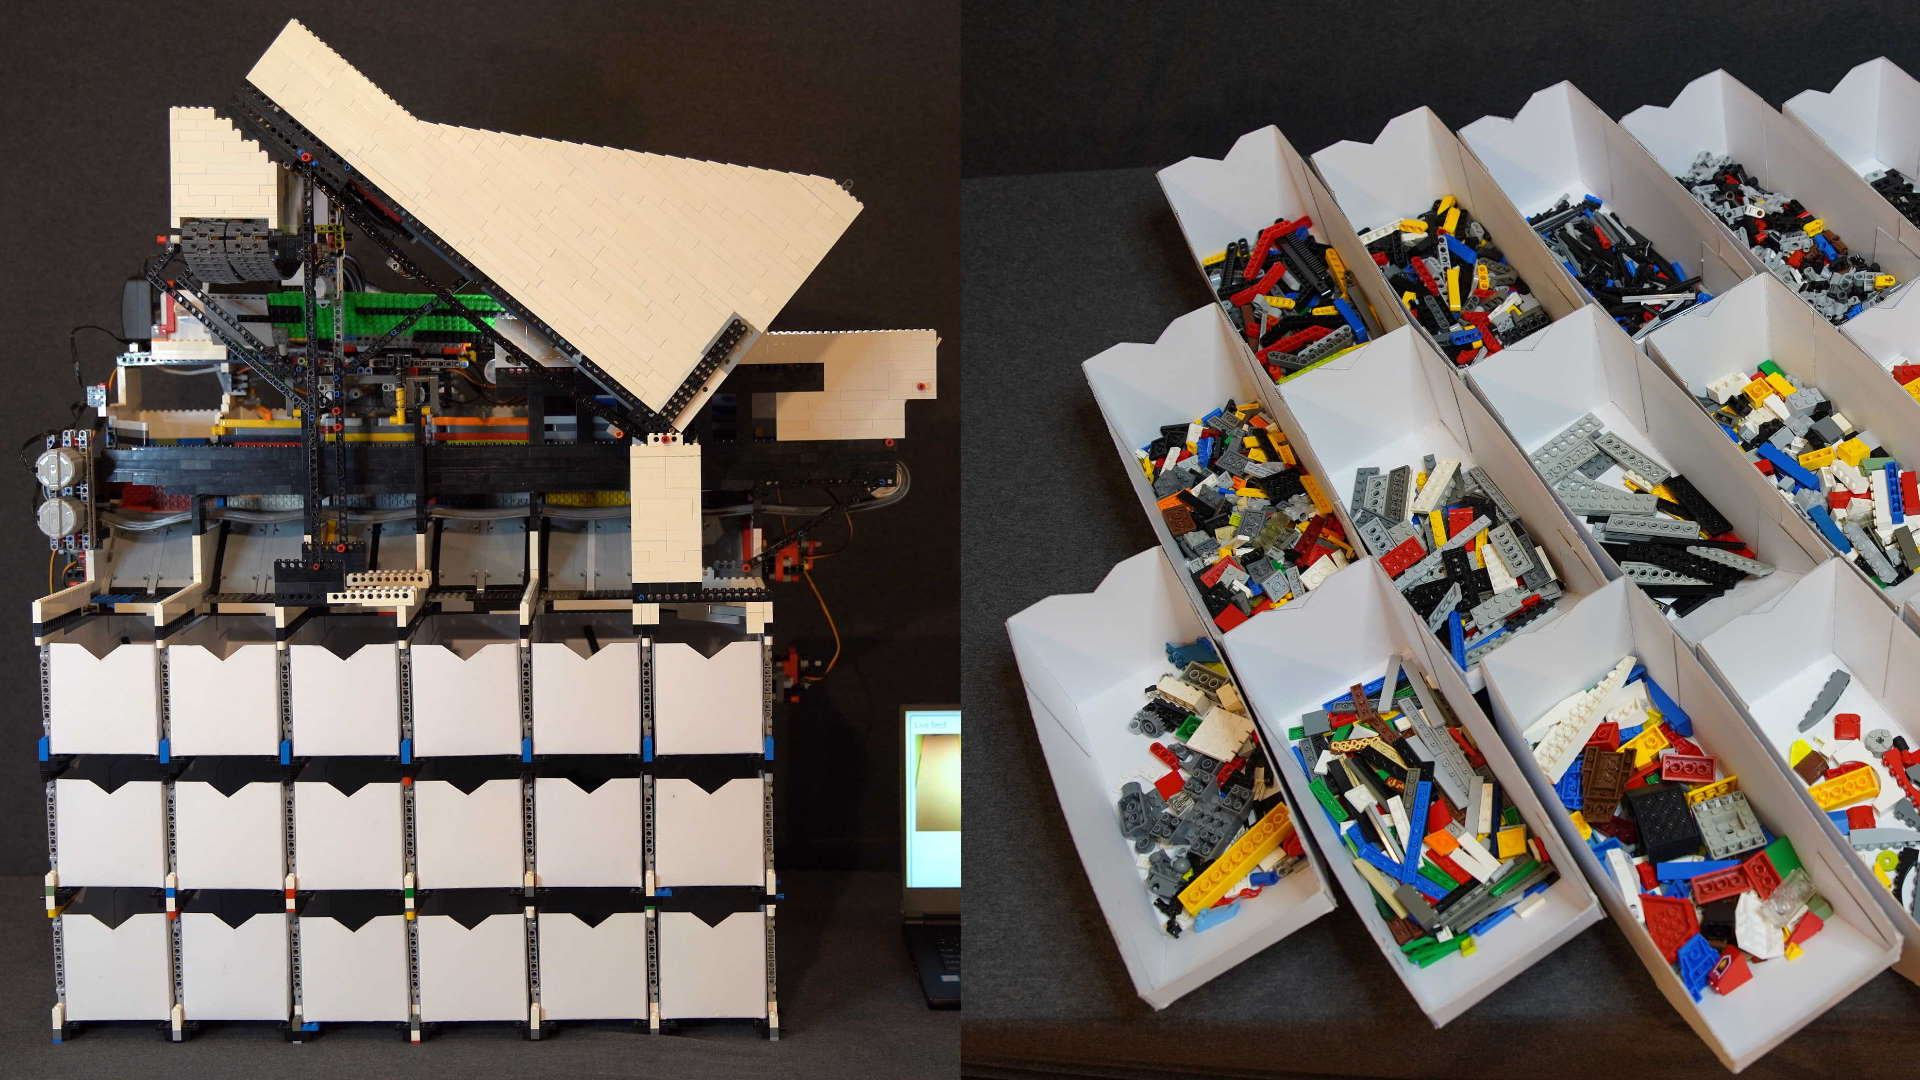 This AI controlled Lego sorting machine is what my childhood dreams were made of